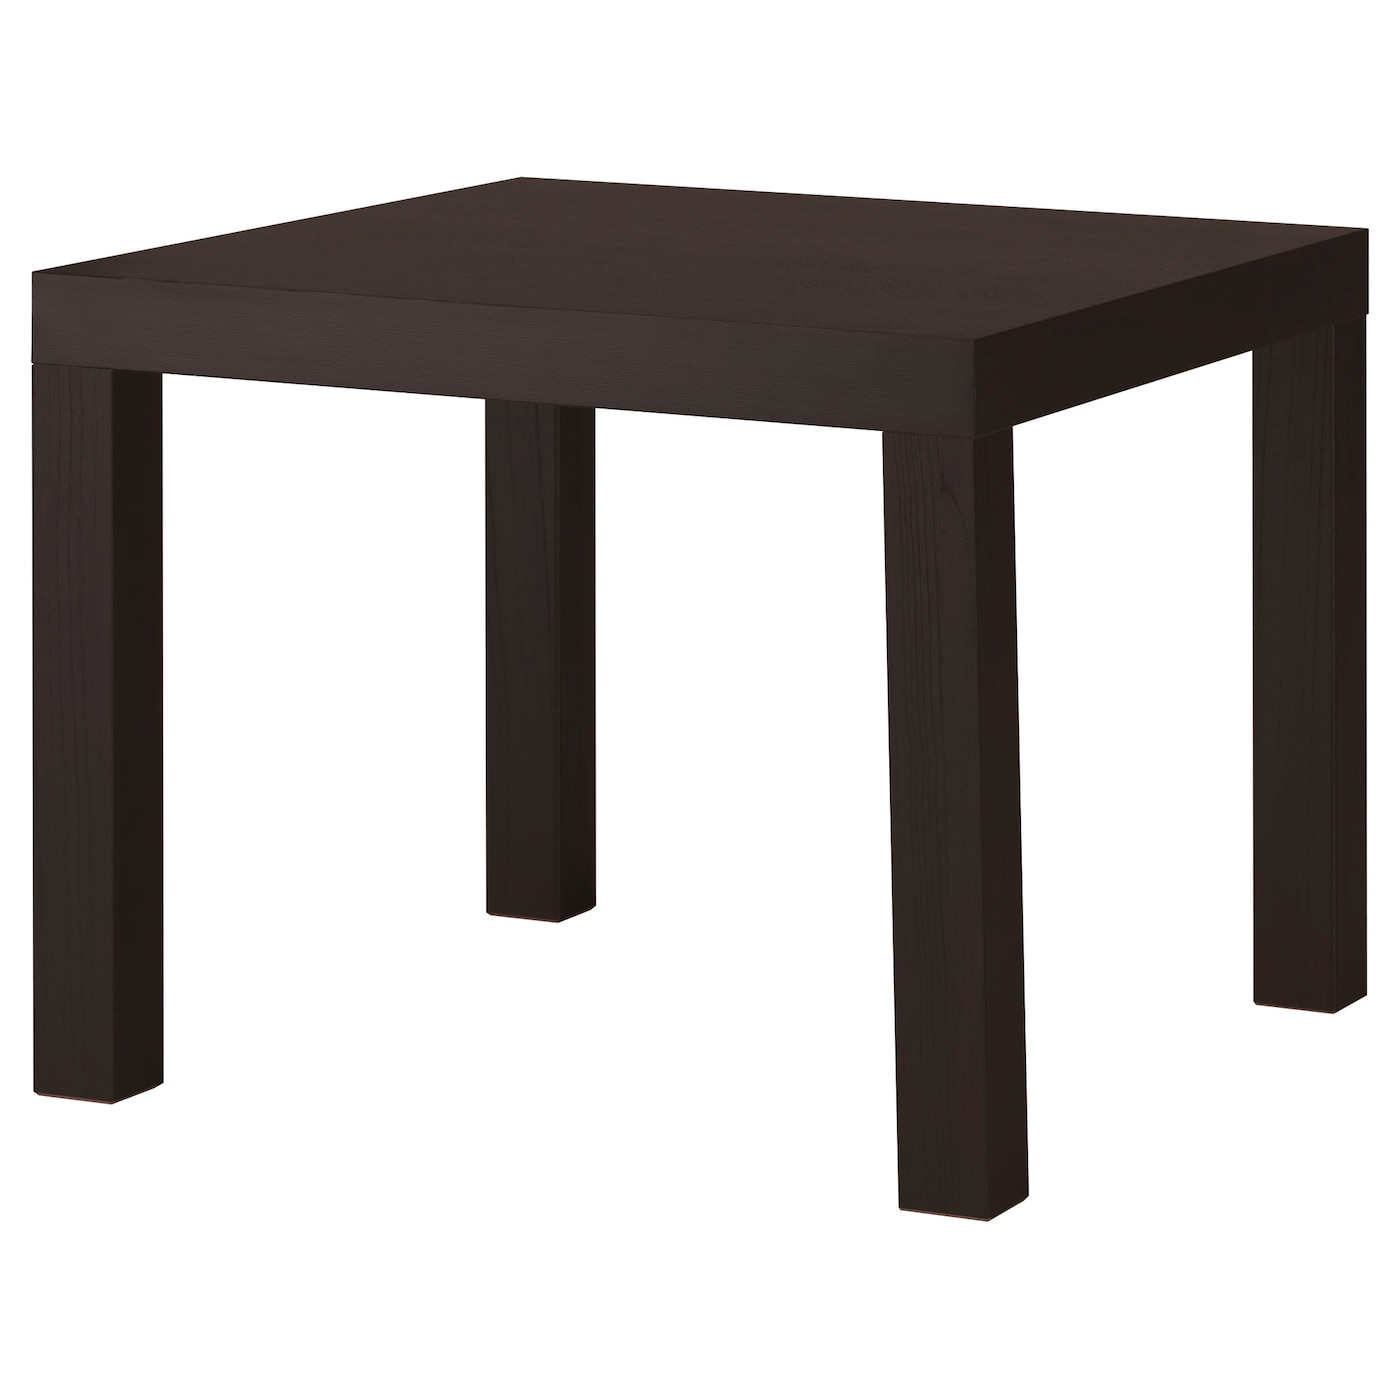 Lack table d 39 appoint brun noir 55x55 cm ikea - Ikea table noire ...